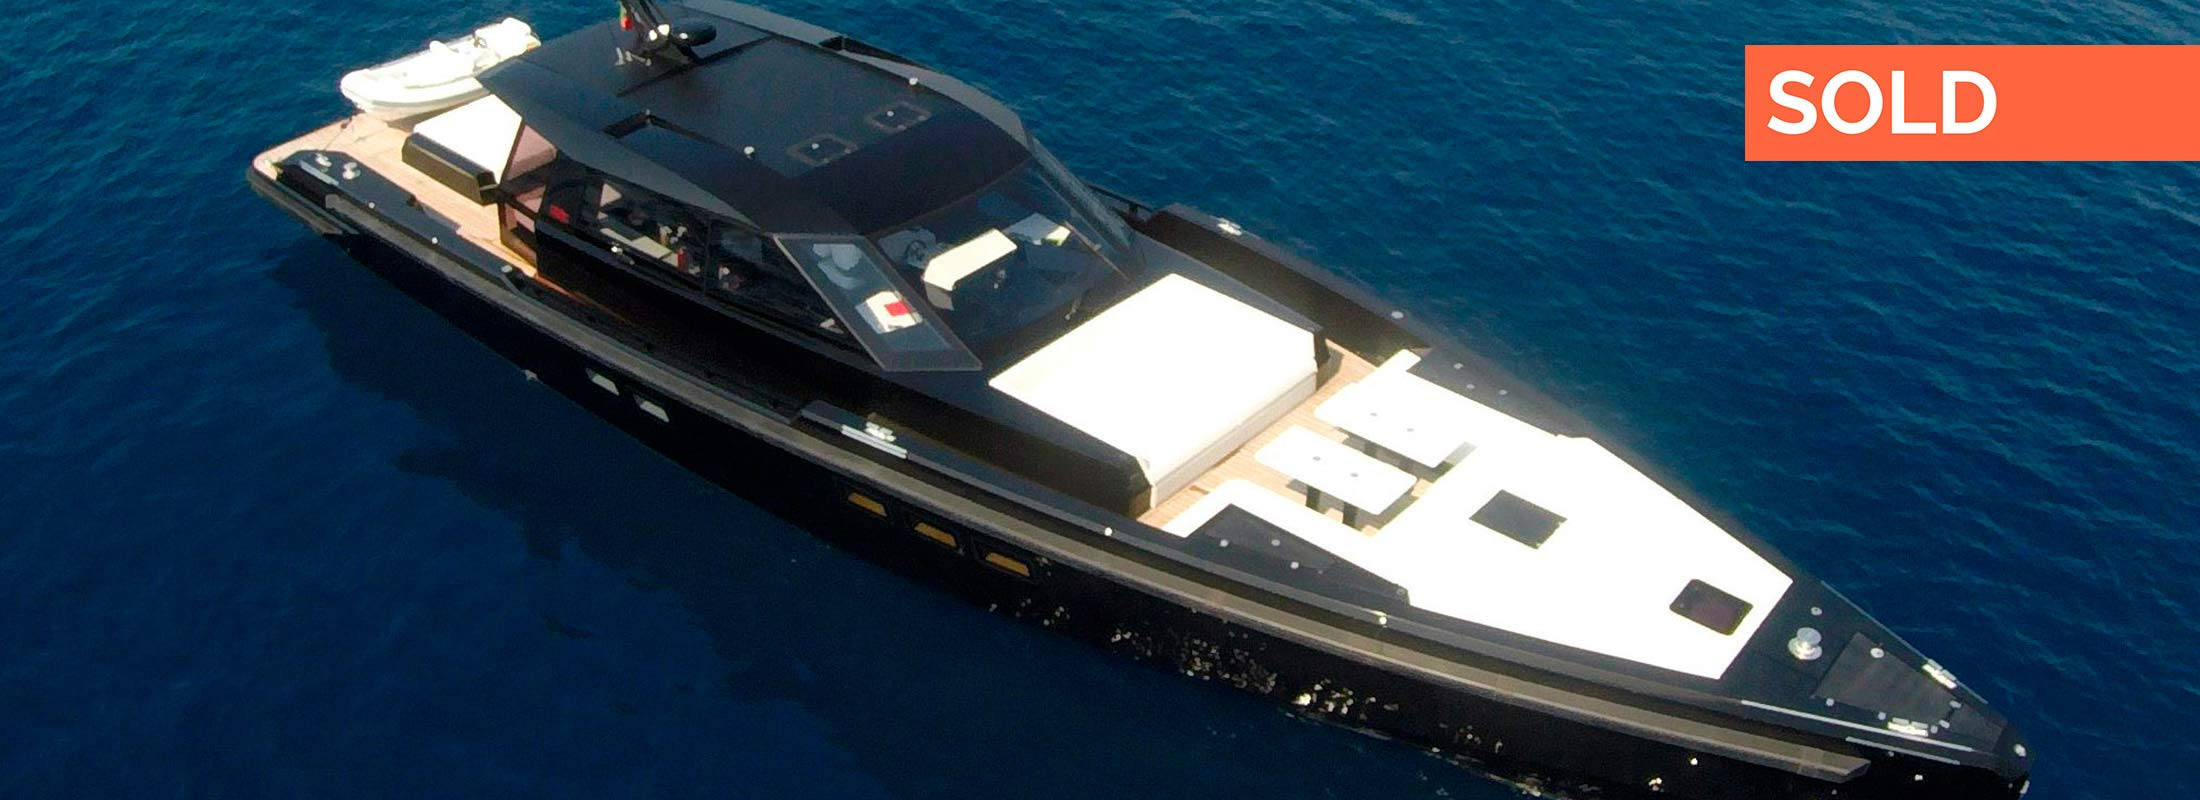 Matariki-Motor-Yacht-for-sale-slider-01.jpg